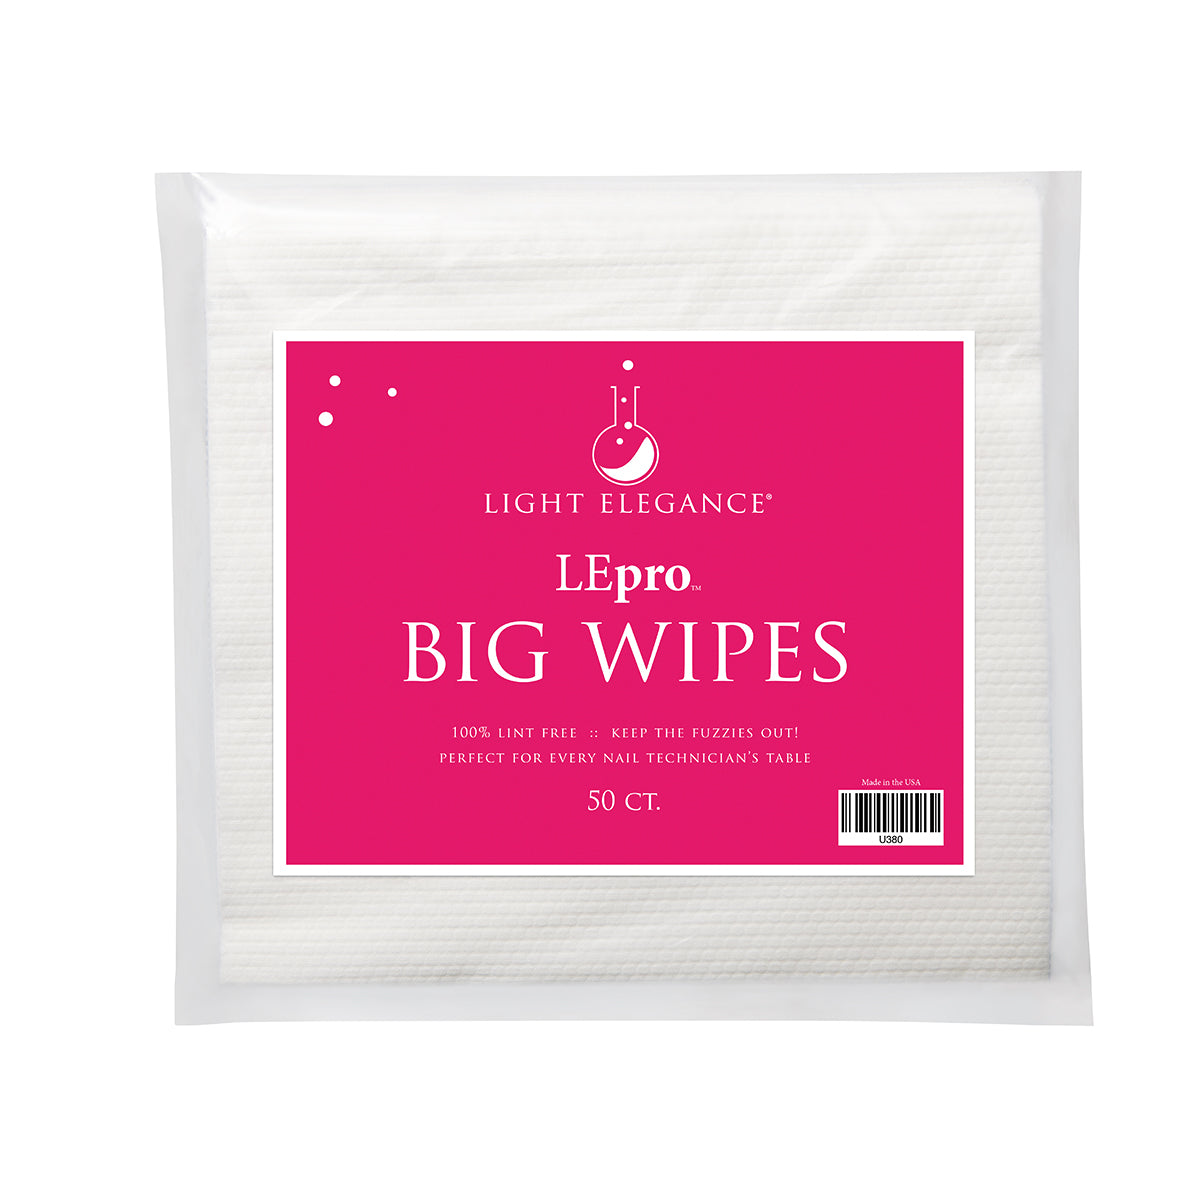 LEpro Big Wipes